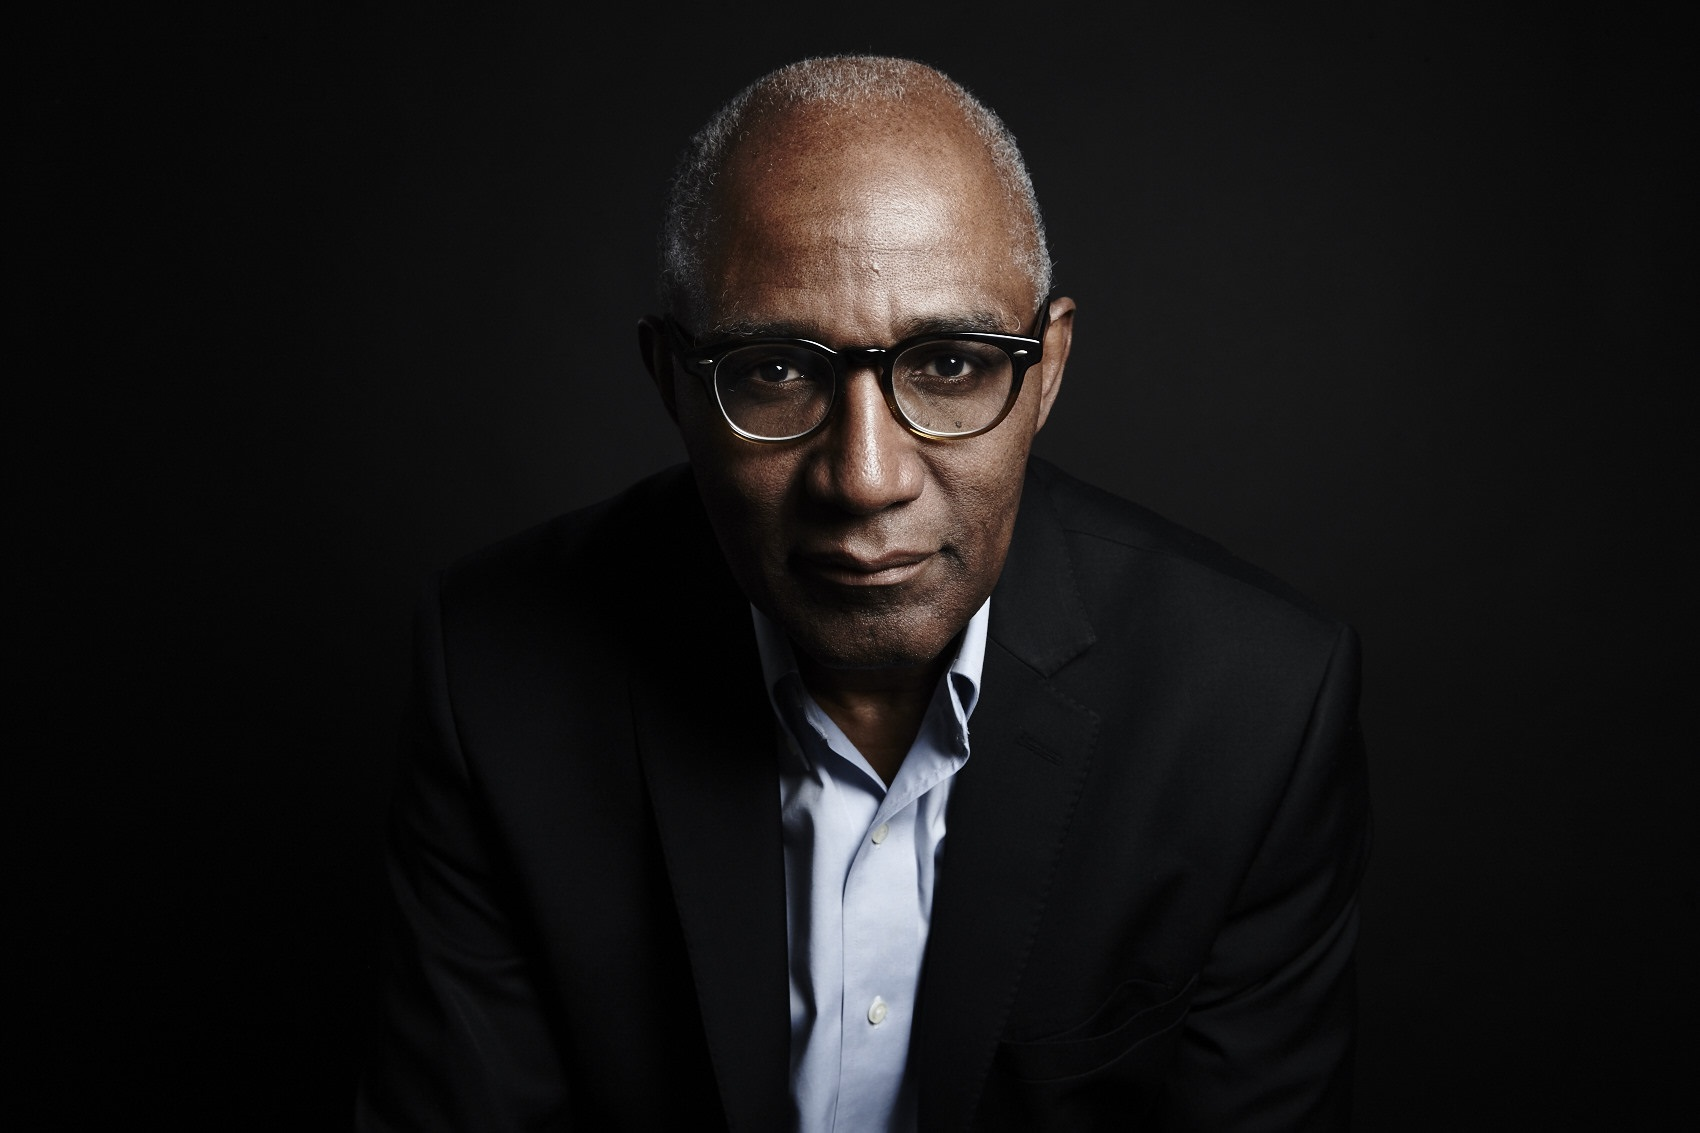 The Telegraph – We must listen to Trevor Phillips and his inconvenient truths about race